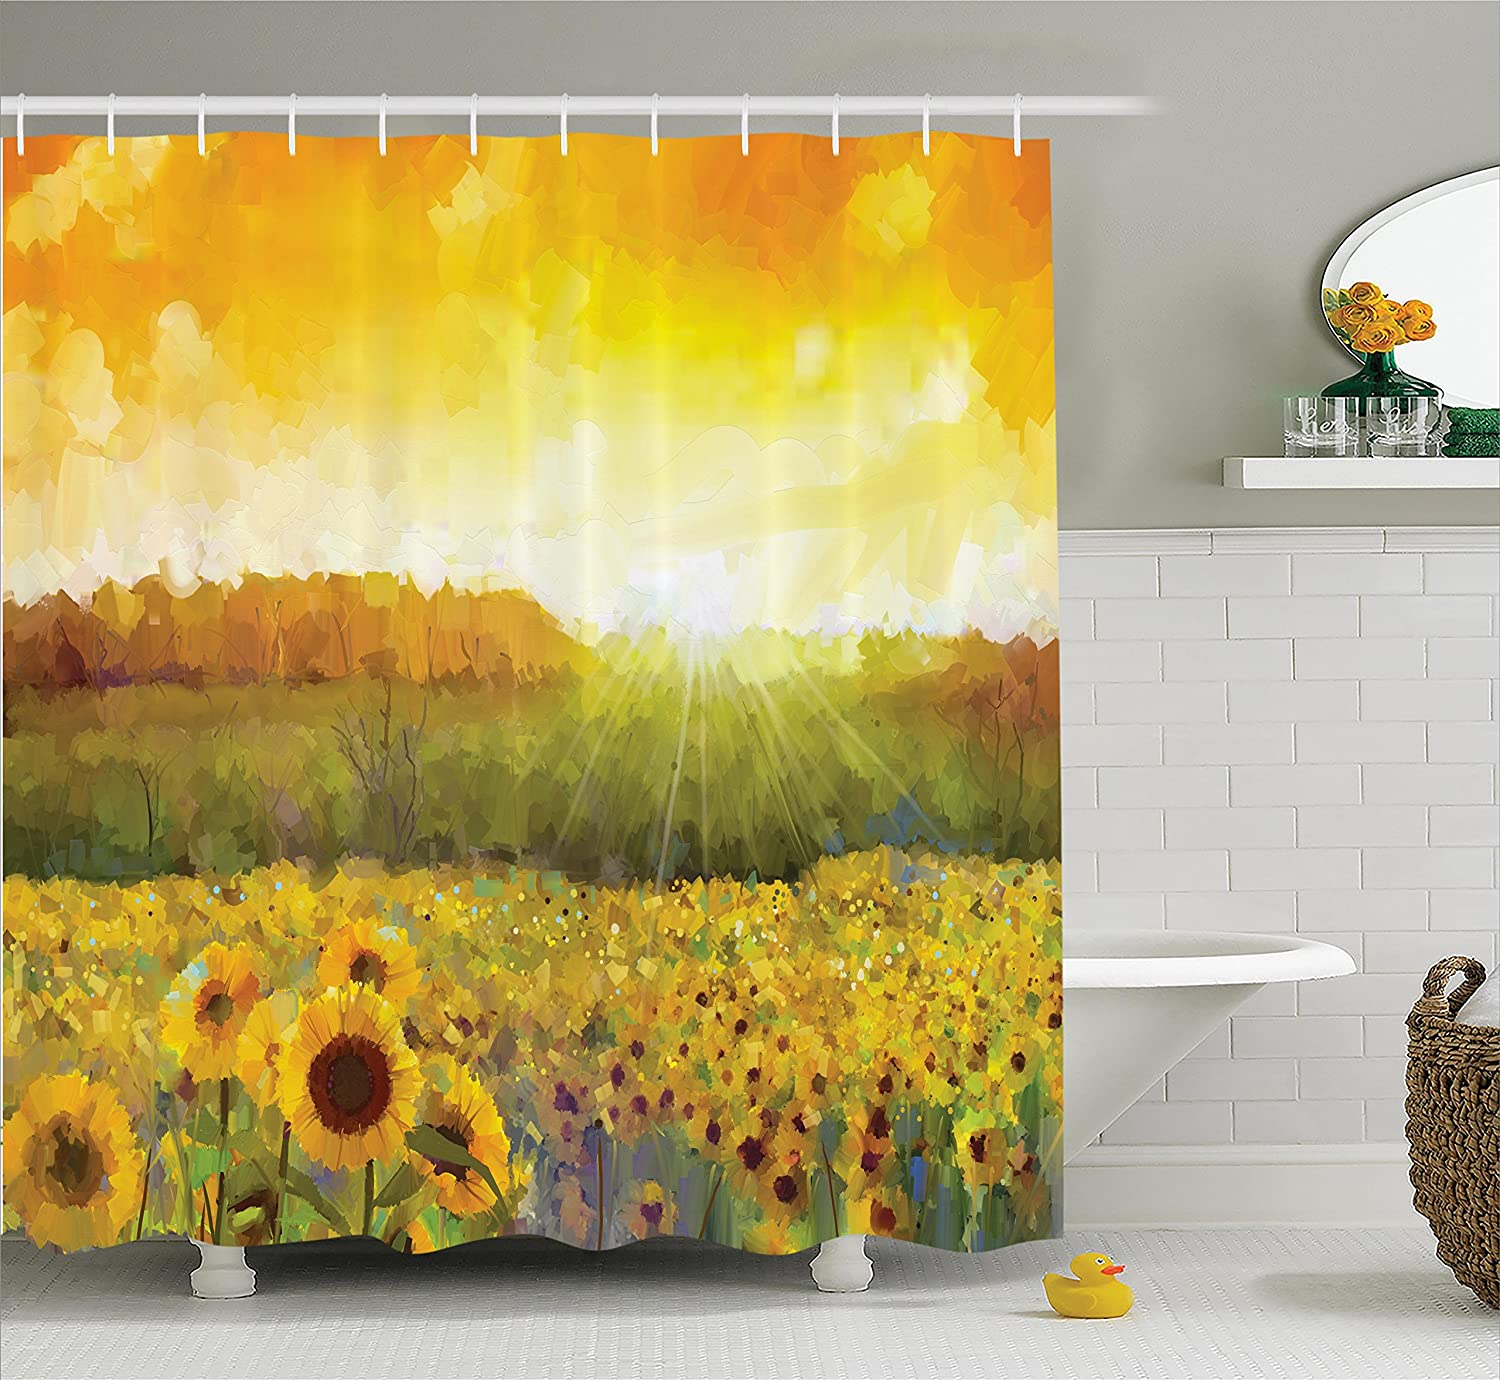 Sunflower bathroom accessories - Sunflower Decor Shower Curtain Set By Ambesonne Landscape Art With A Golden Sunflower Field And